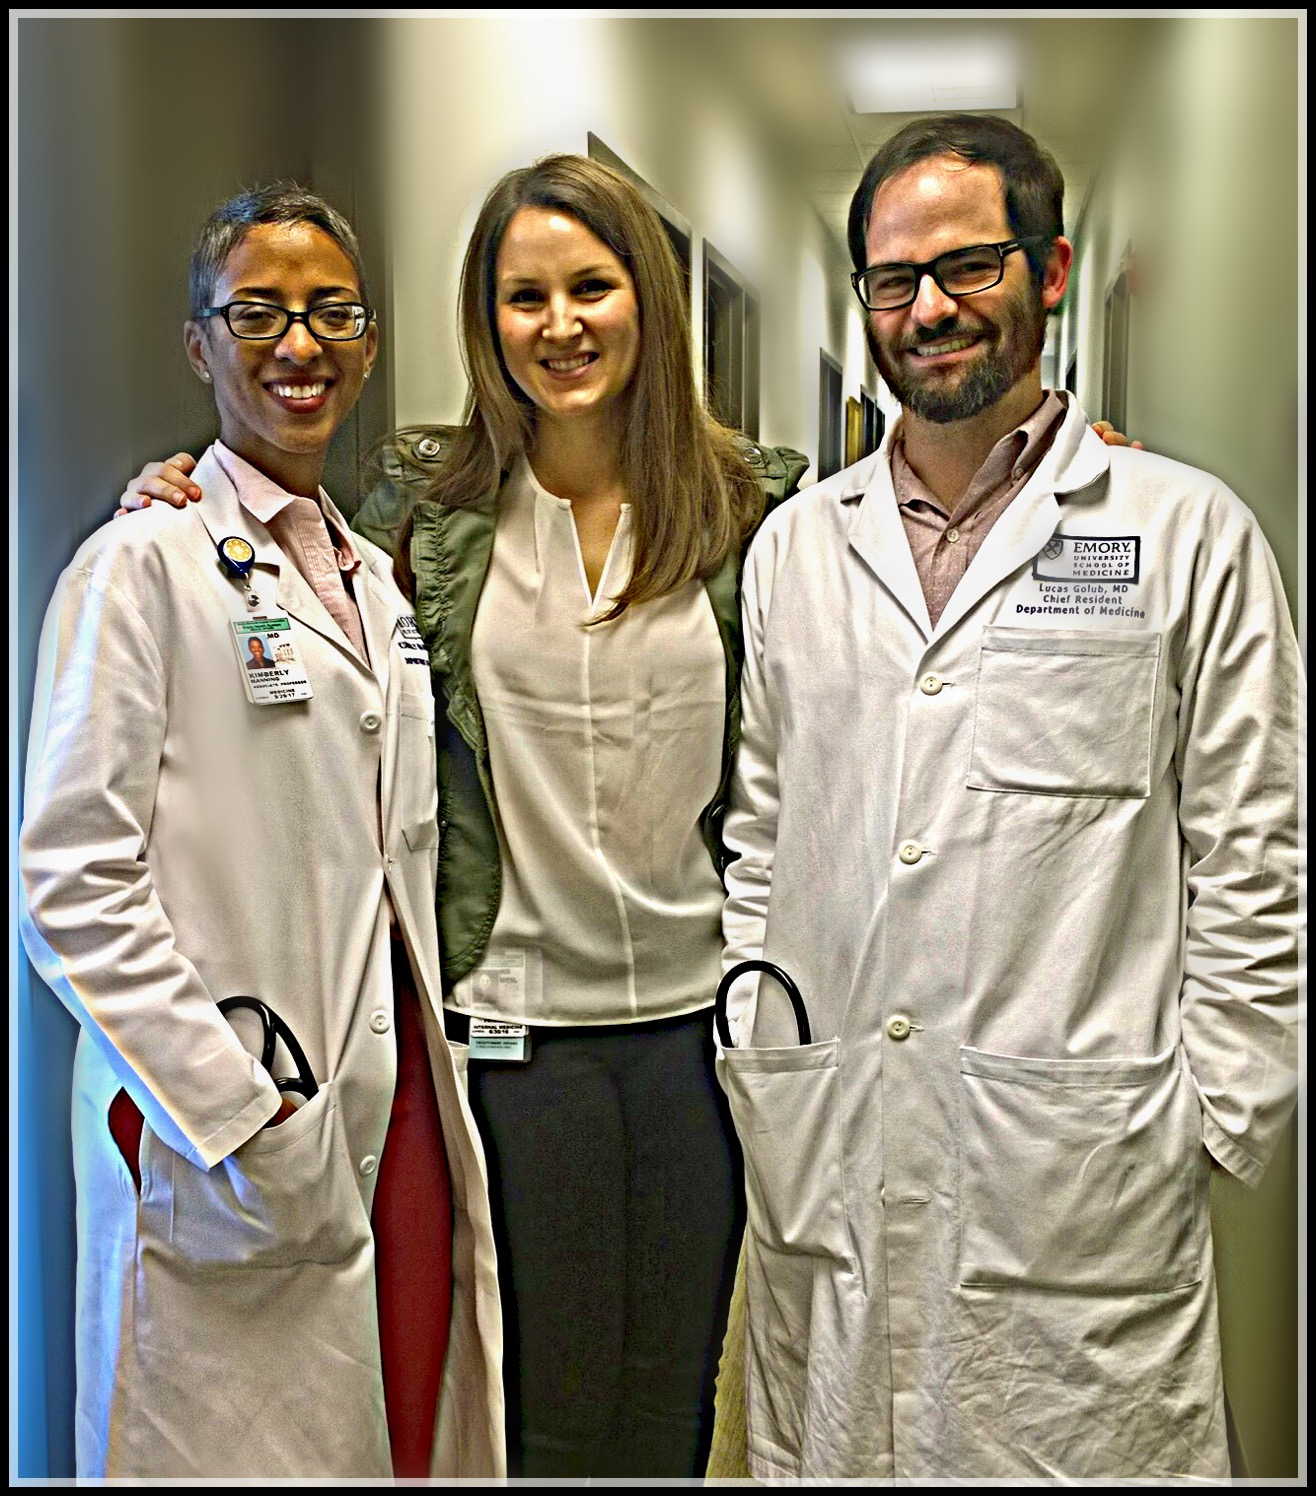 Reflections of a Grady Doctor: Acutely wonderful